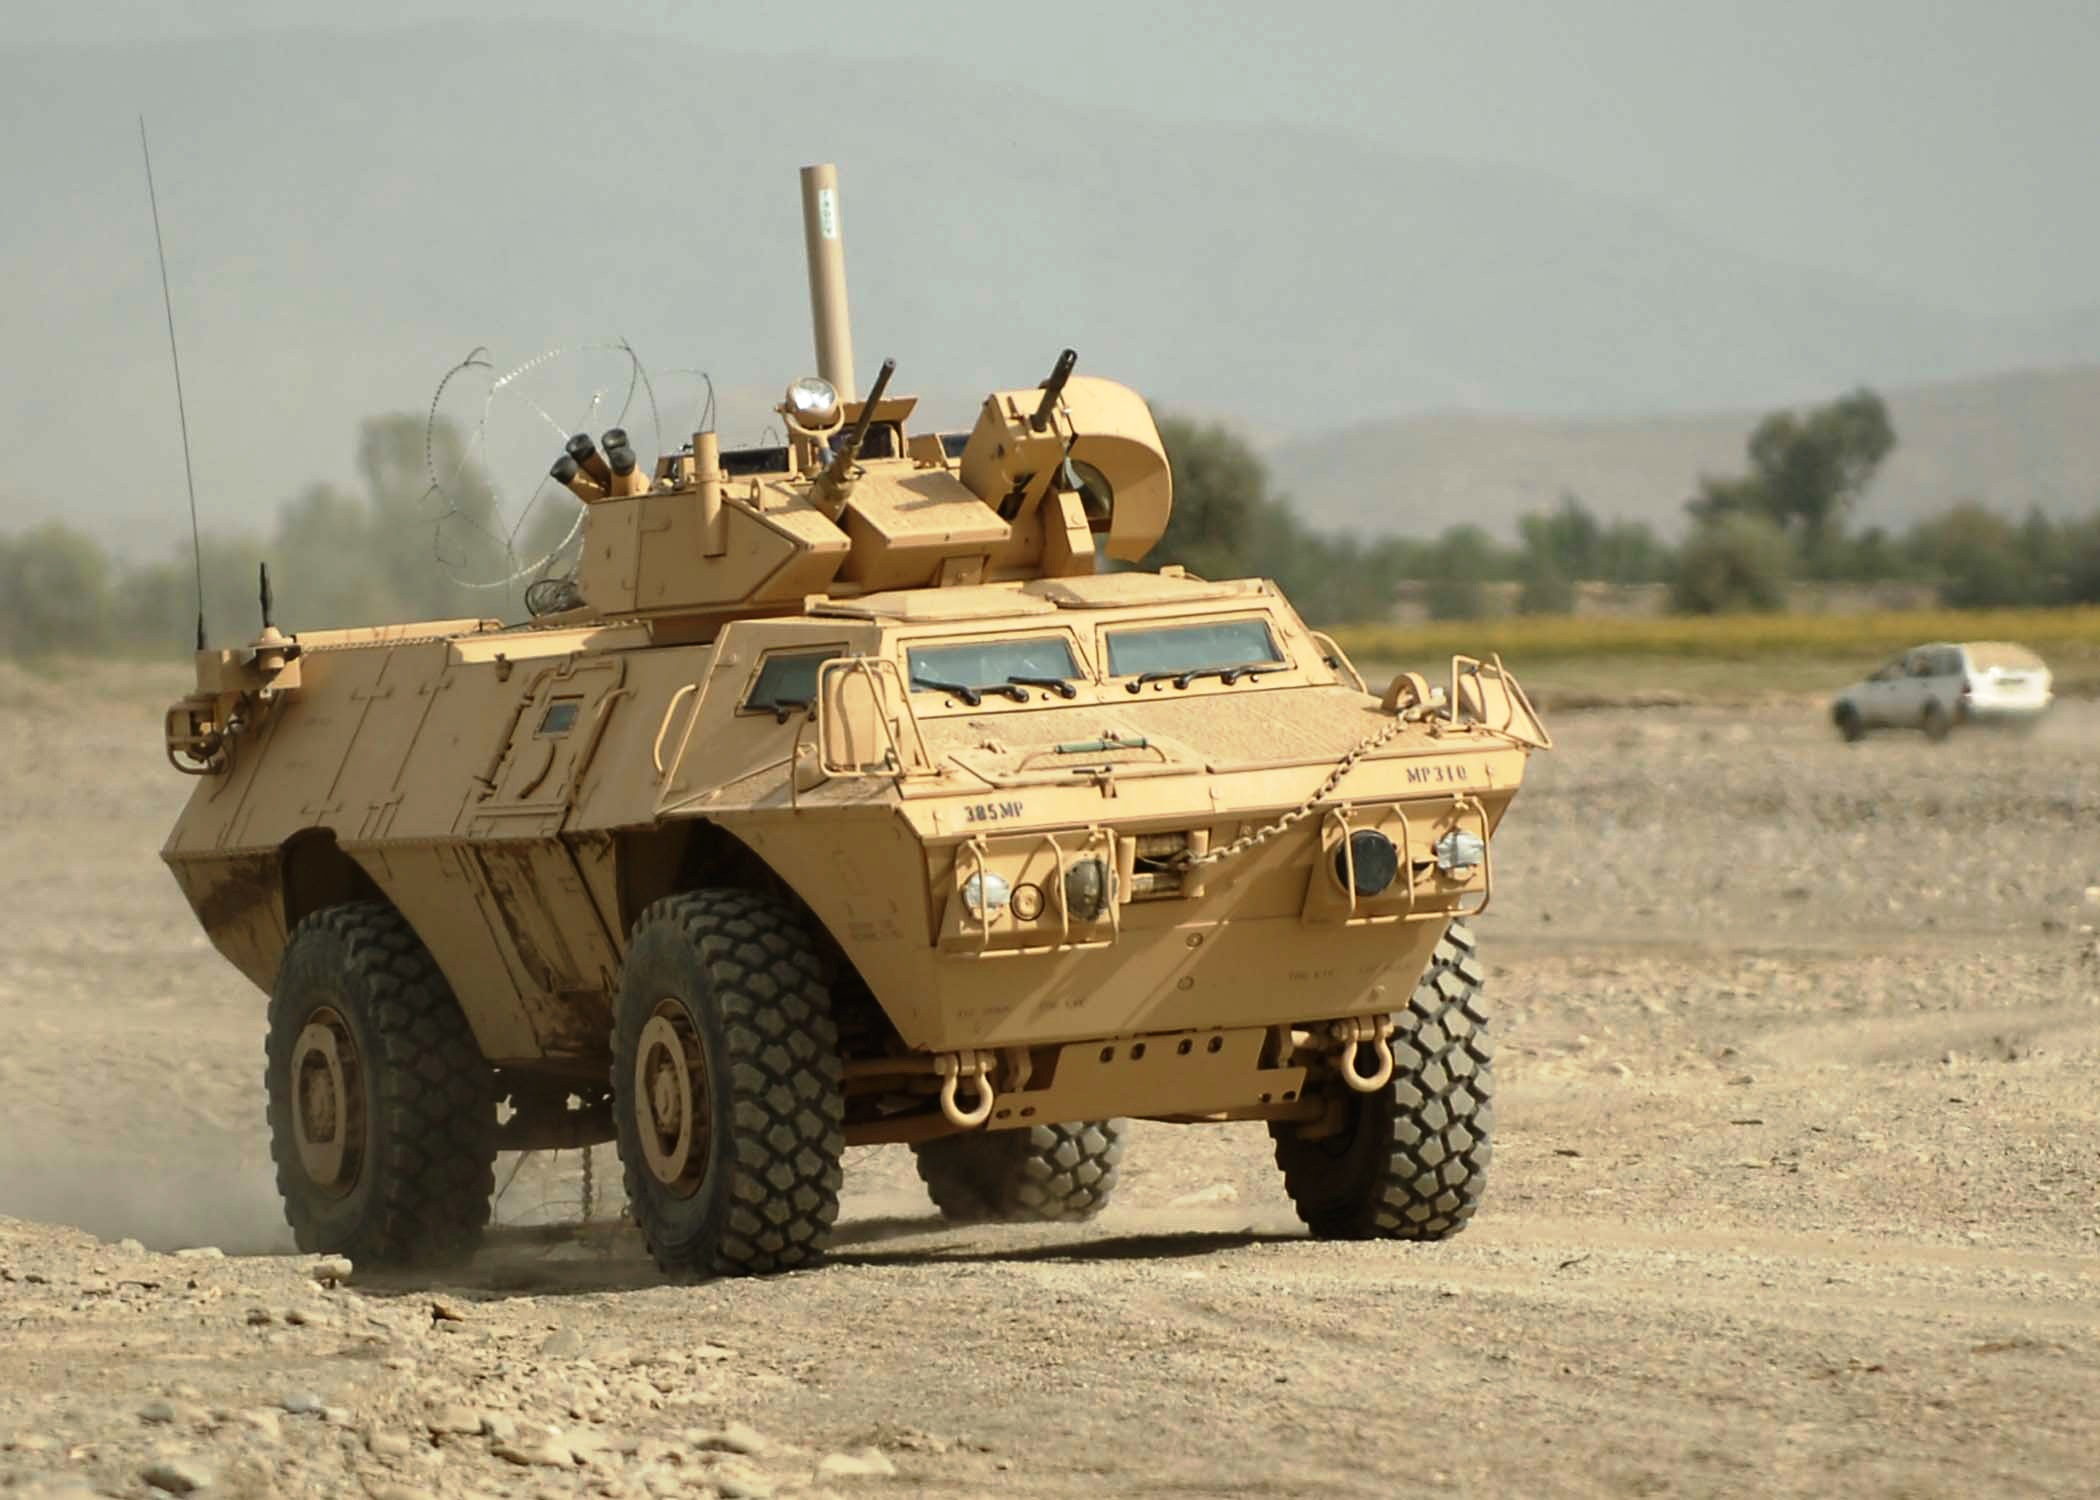 M1117 Armored Security Vehicle - Wikipedia